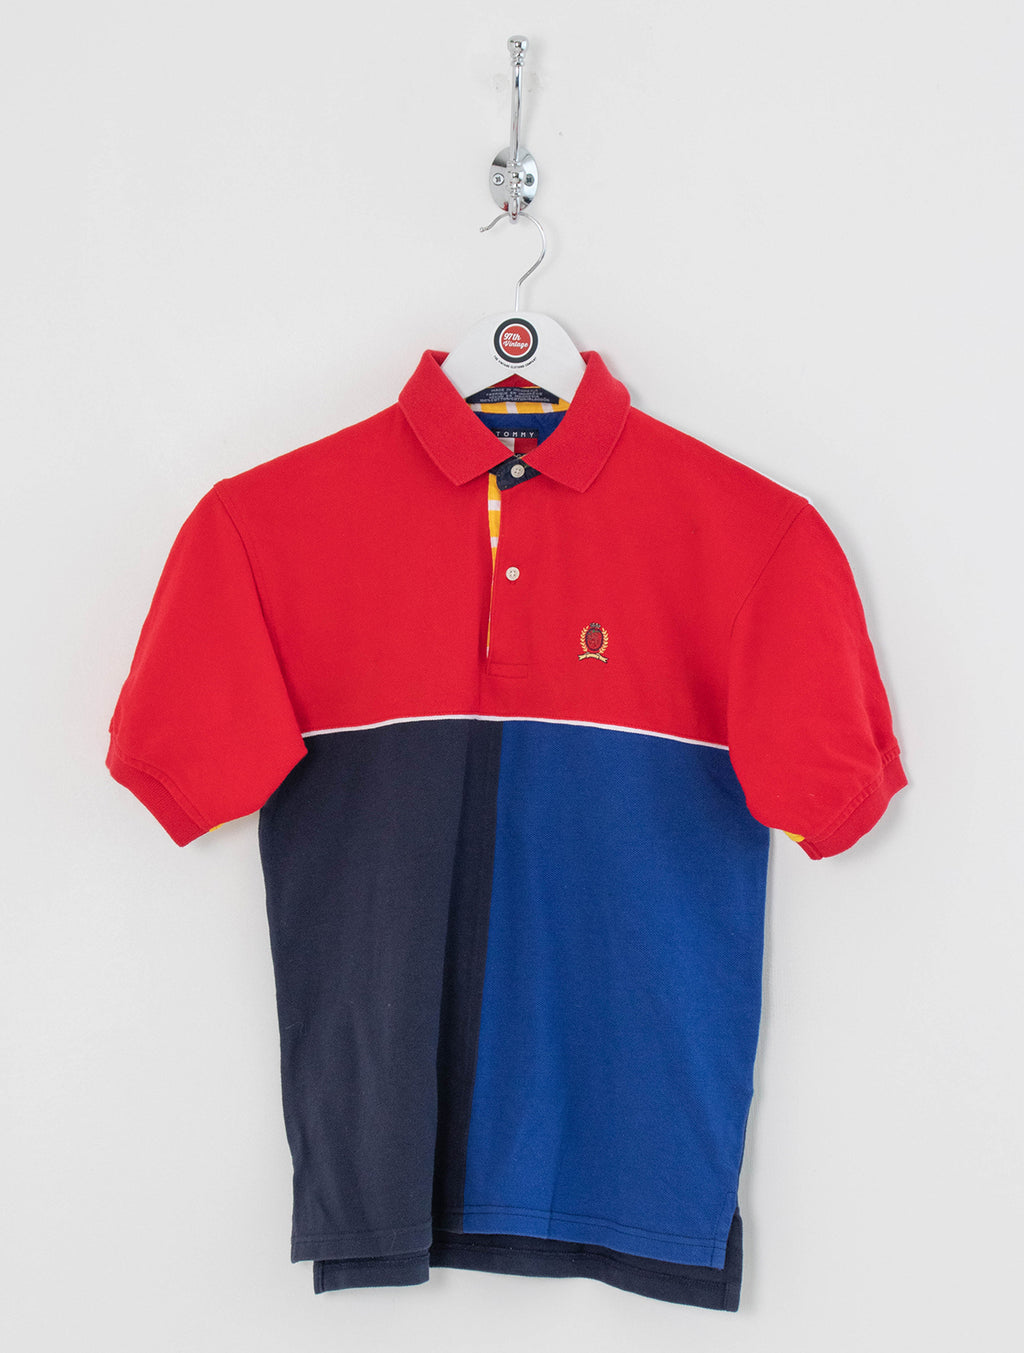 Kids Tommy Hilfiger Polo Shirt (M)